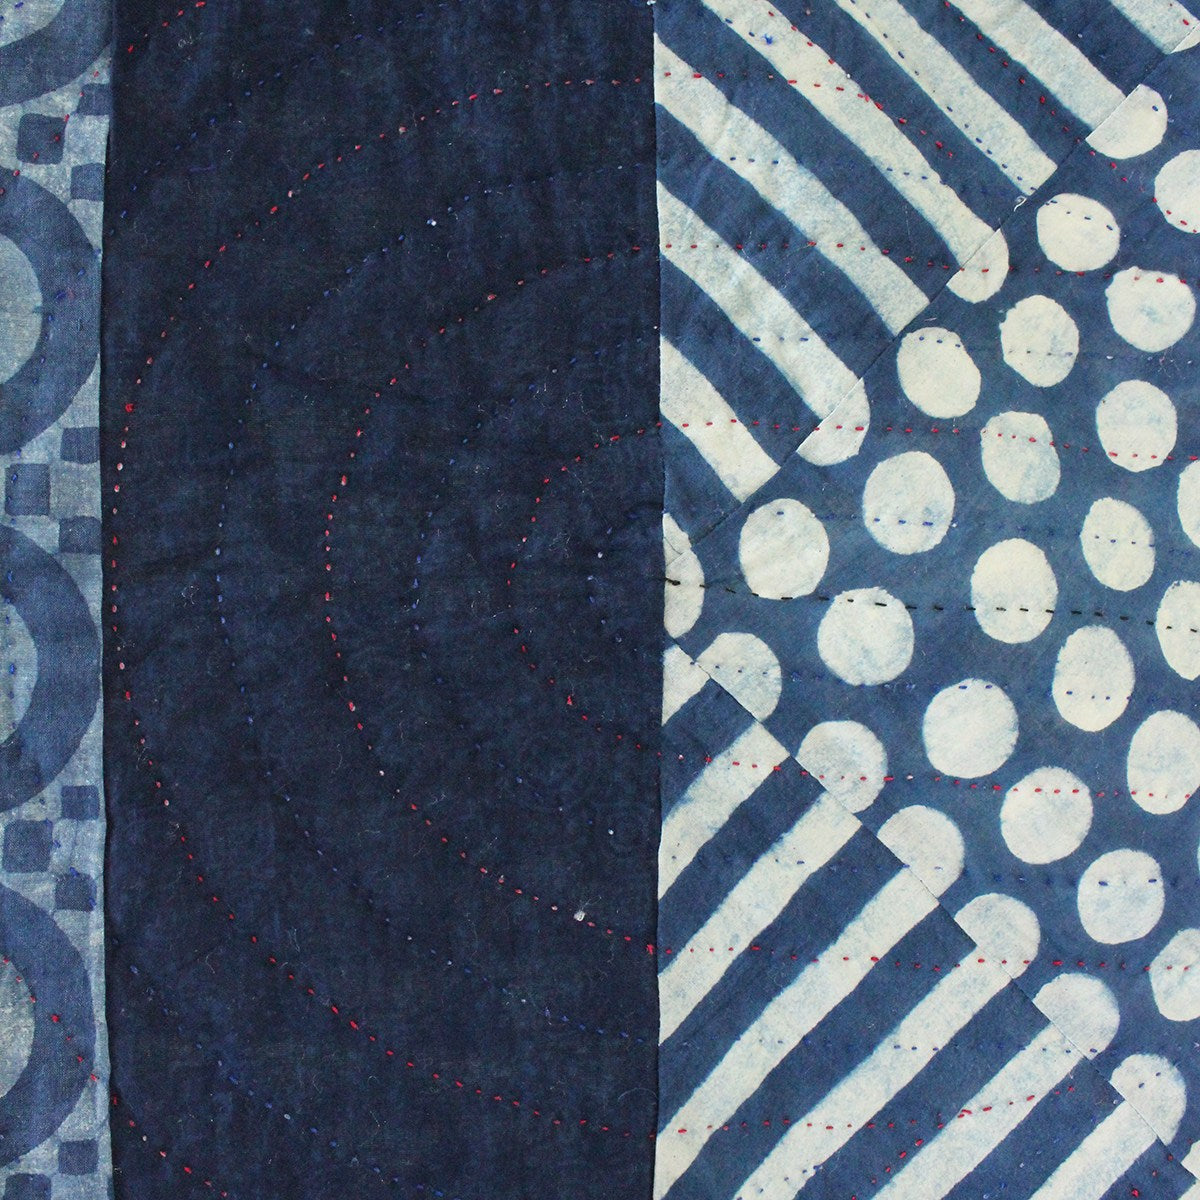 Detail of pattern on indigo dyed quilt